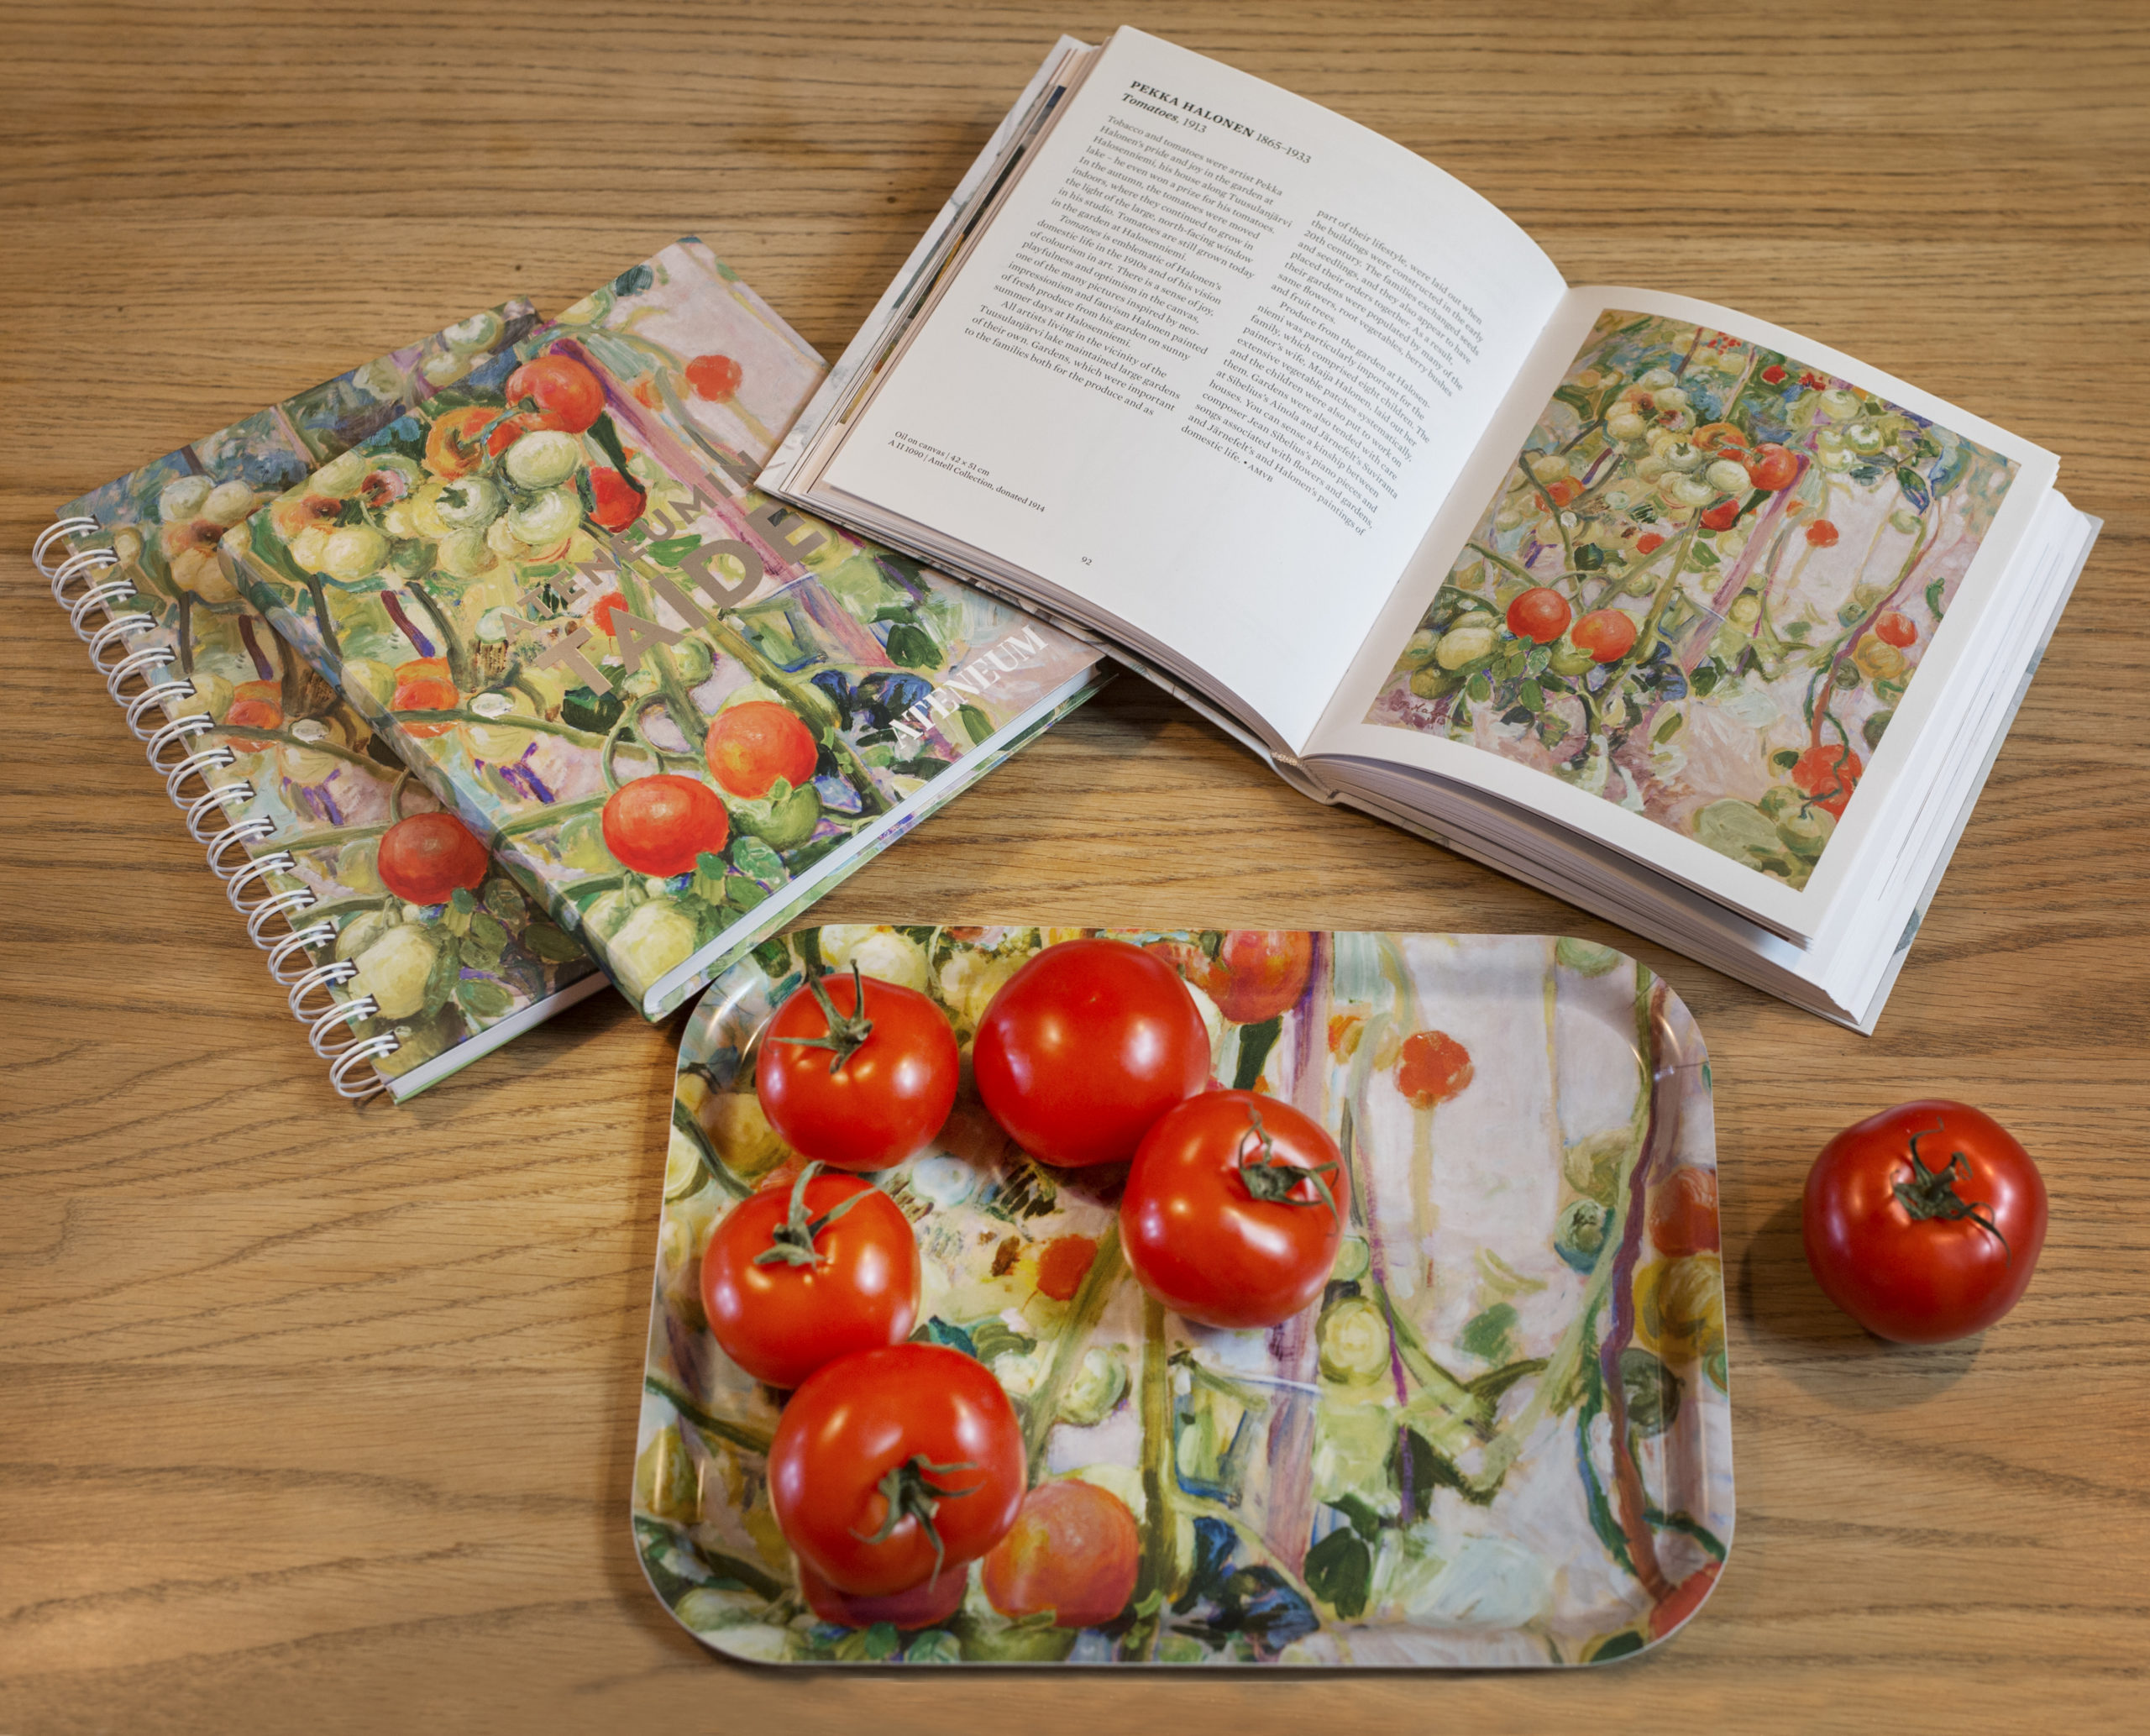 Tomatoes and museum shop products on the wooden table